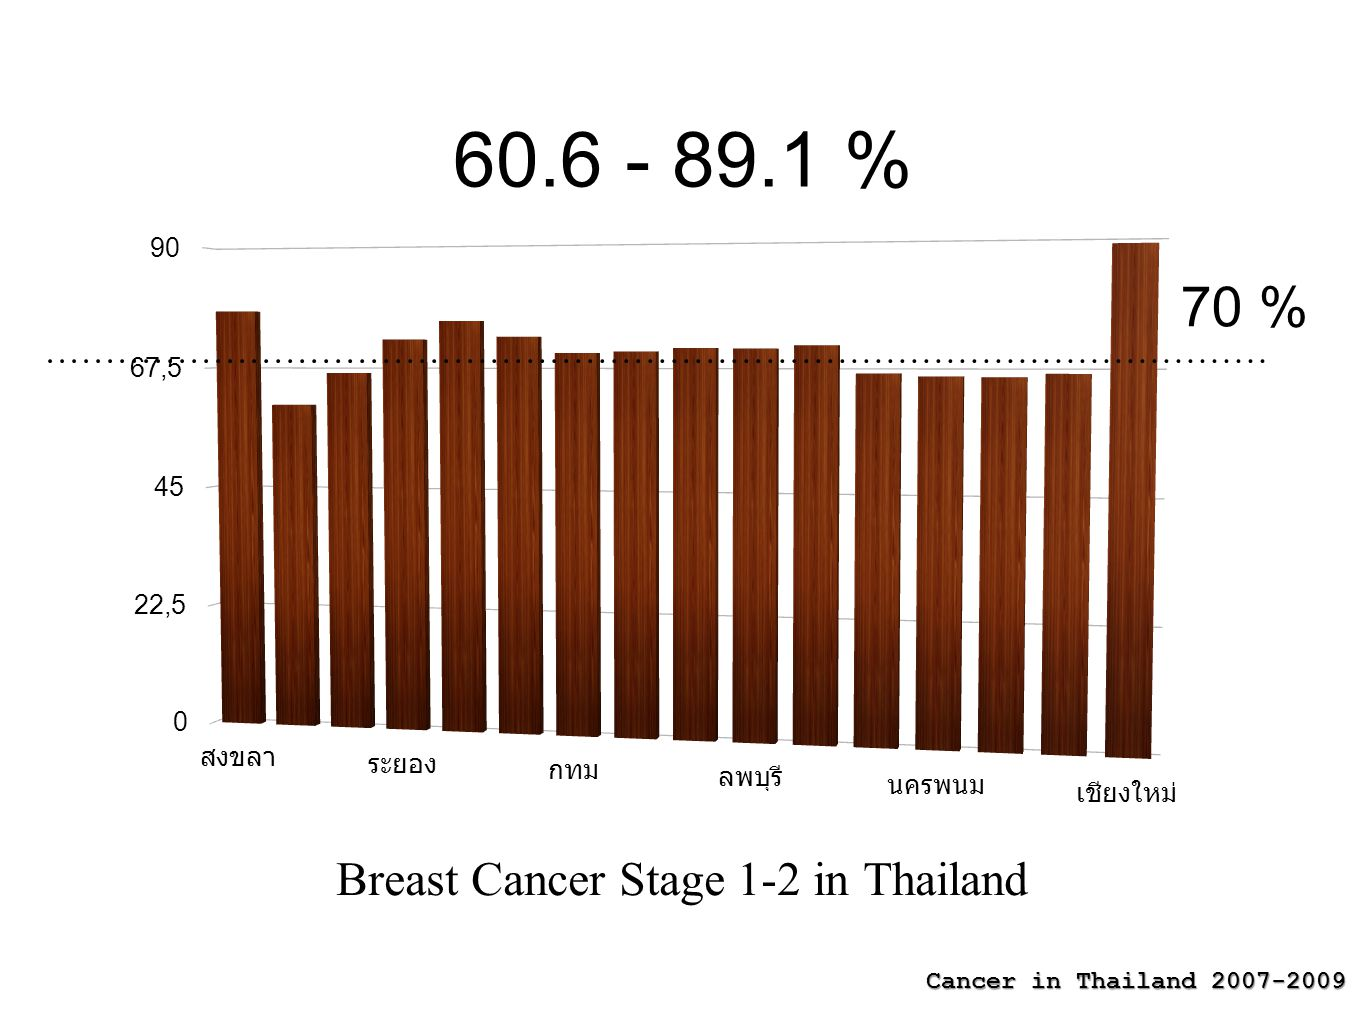 Breast Cancer Stage 1-2 in Thailand 60.6 - 89.1 % 70 % Cancer in Thailand 2007-2009